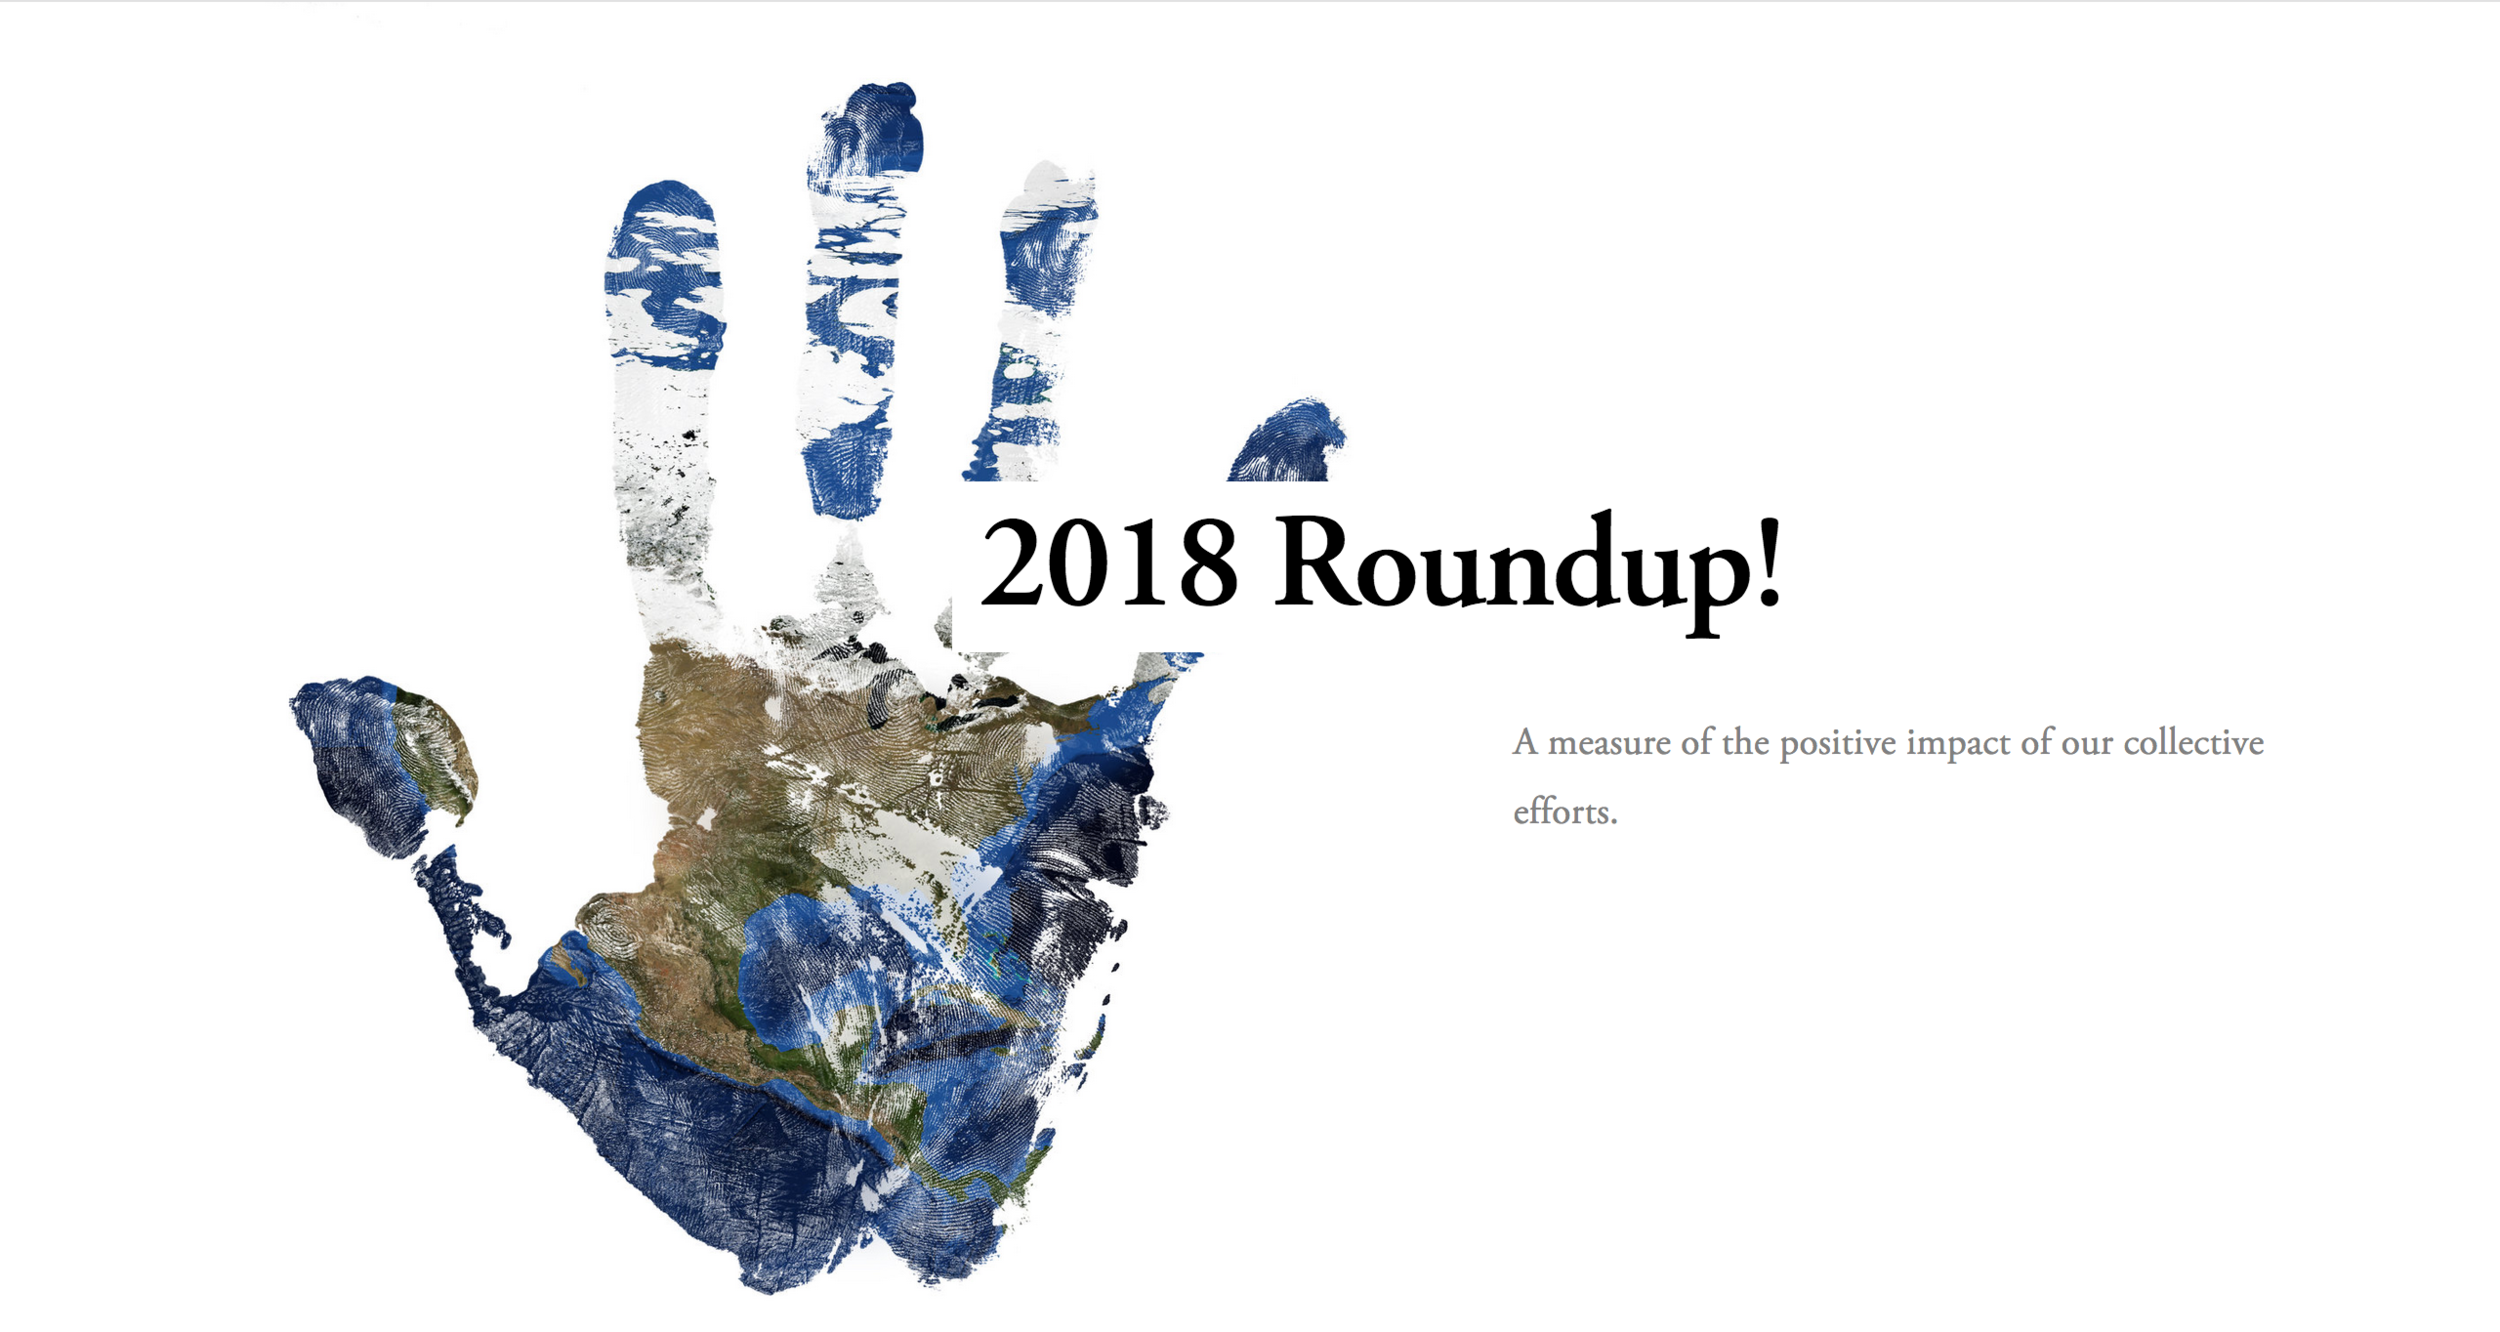 The Green Engineer's 2018 Roundup!